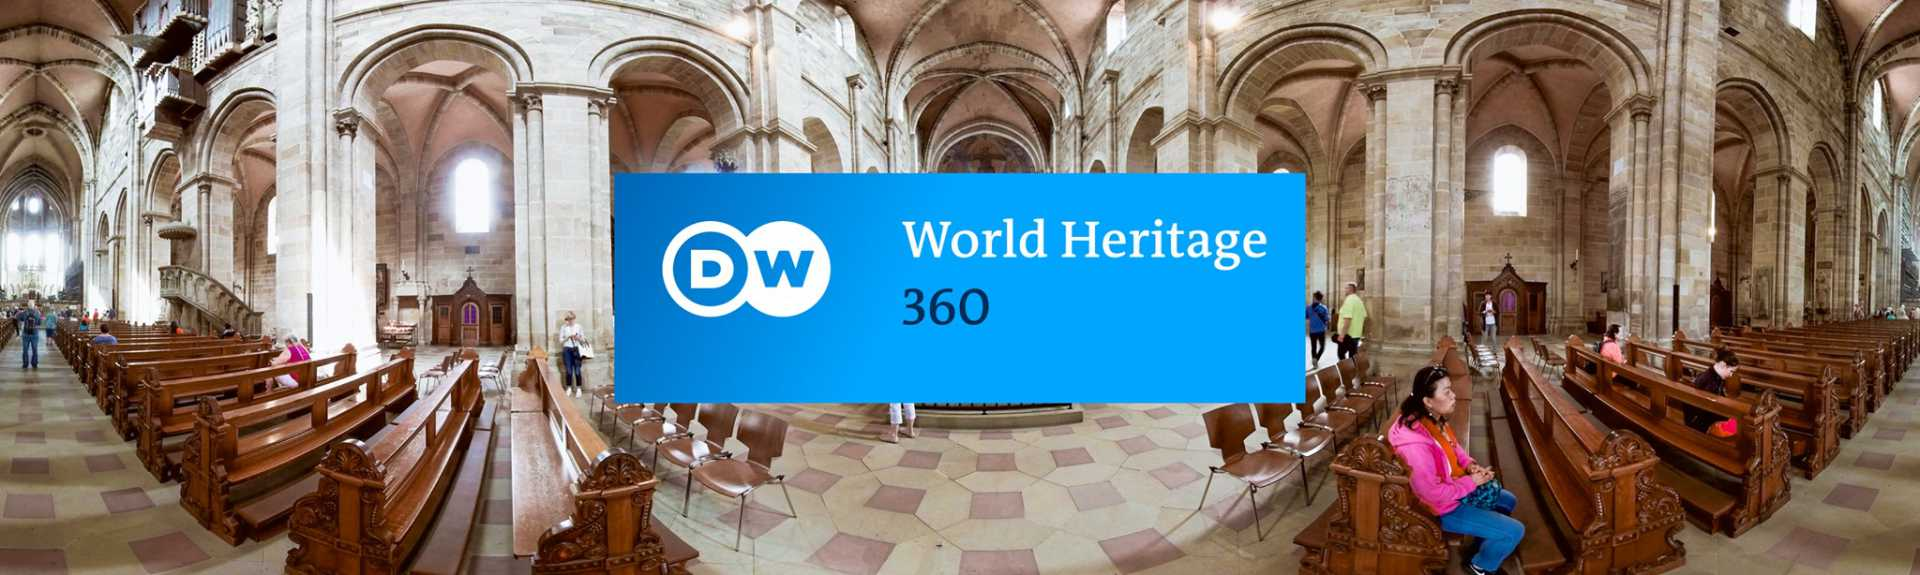 DW World Heritage 360